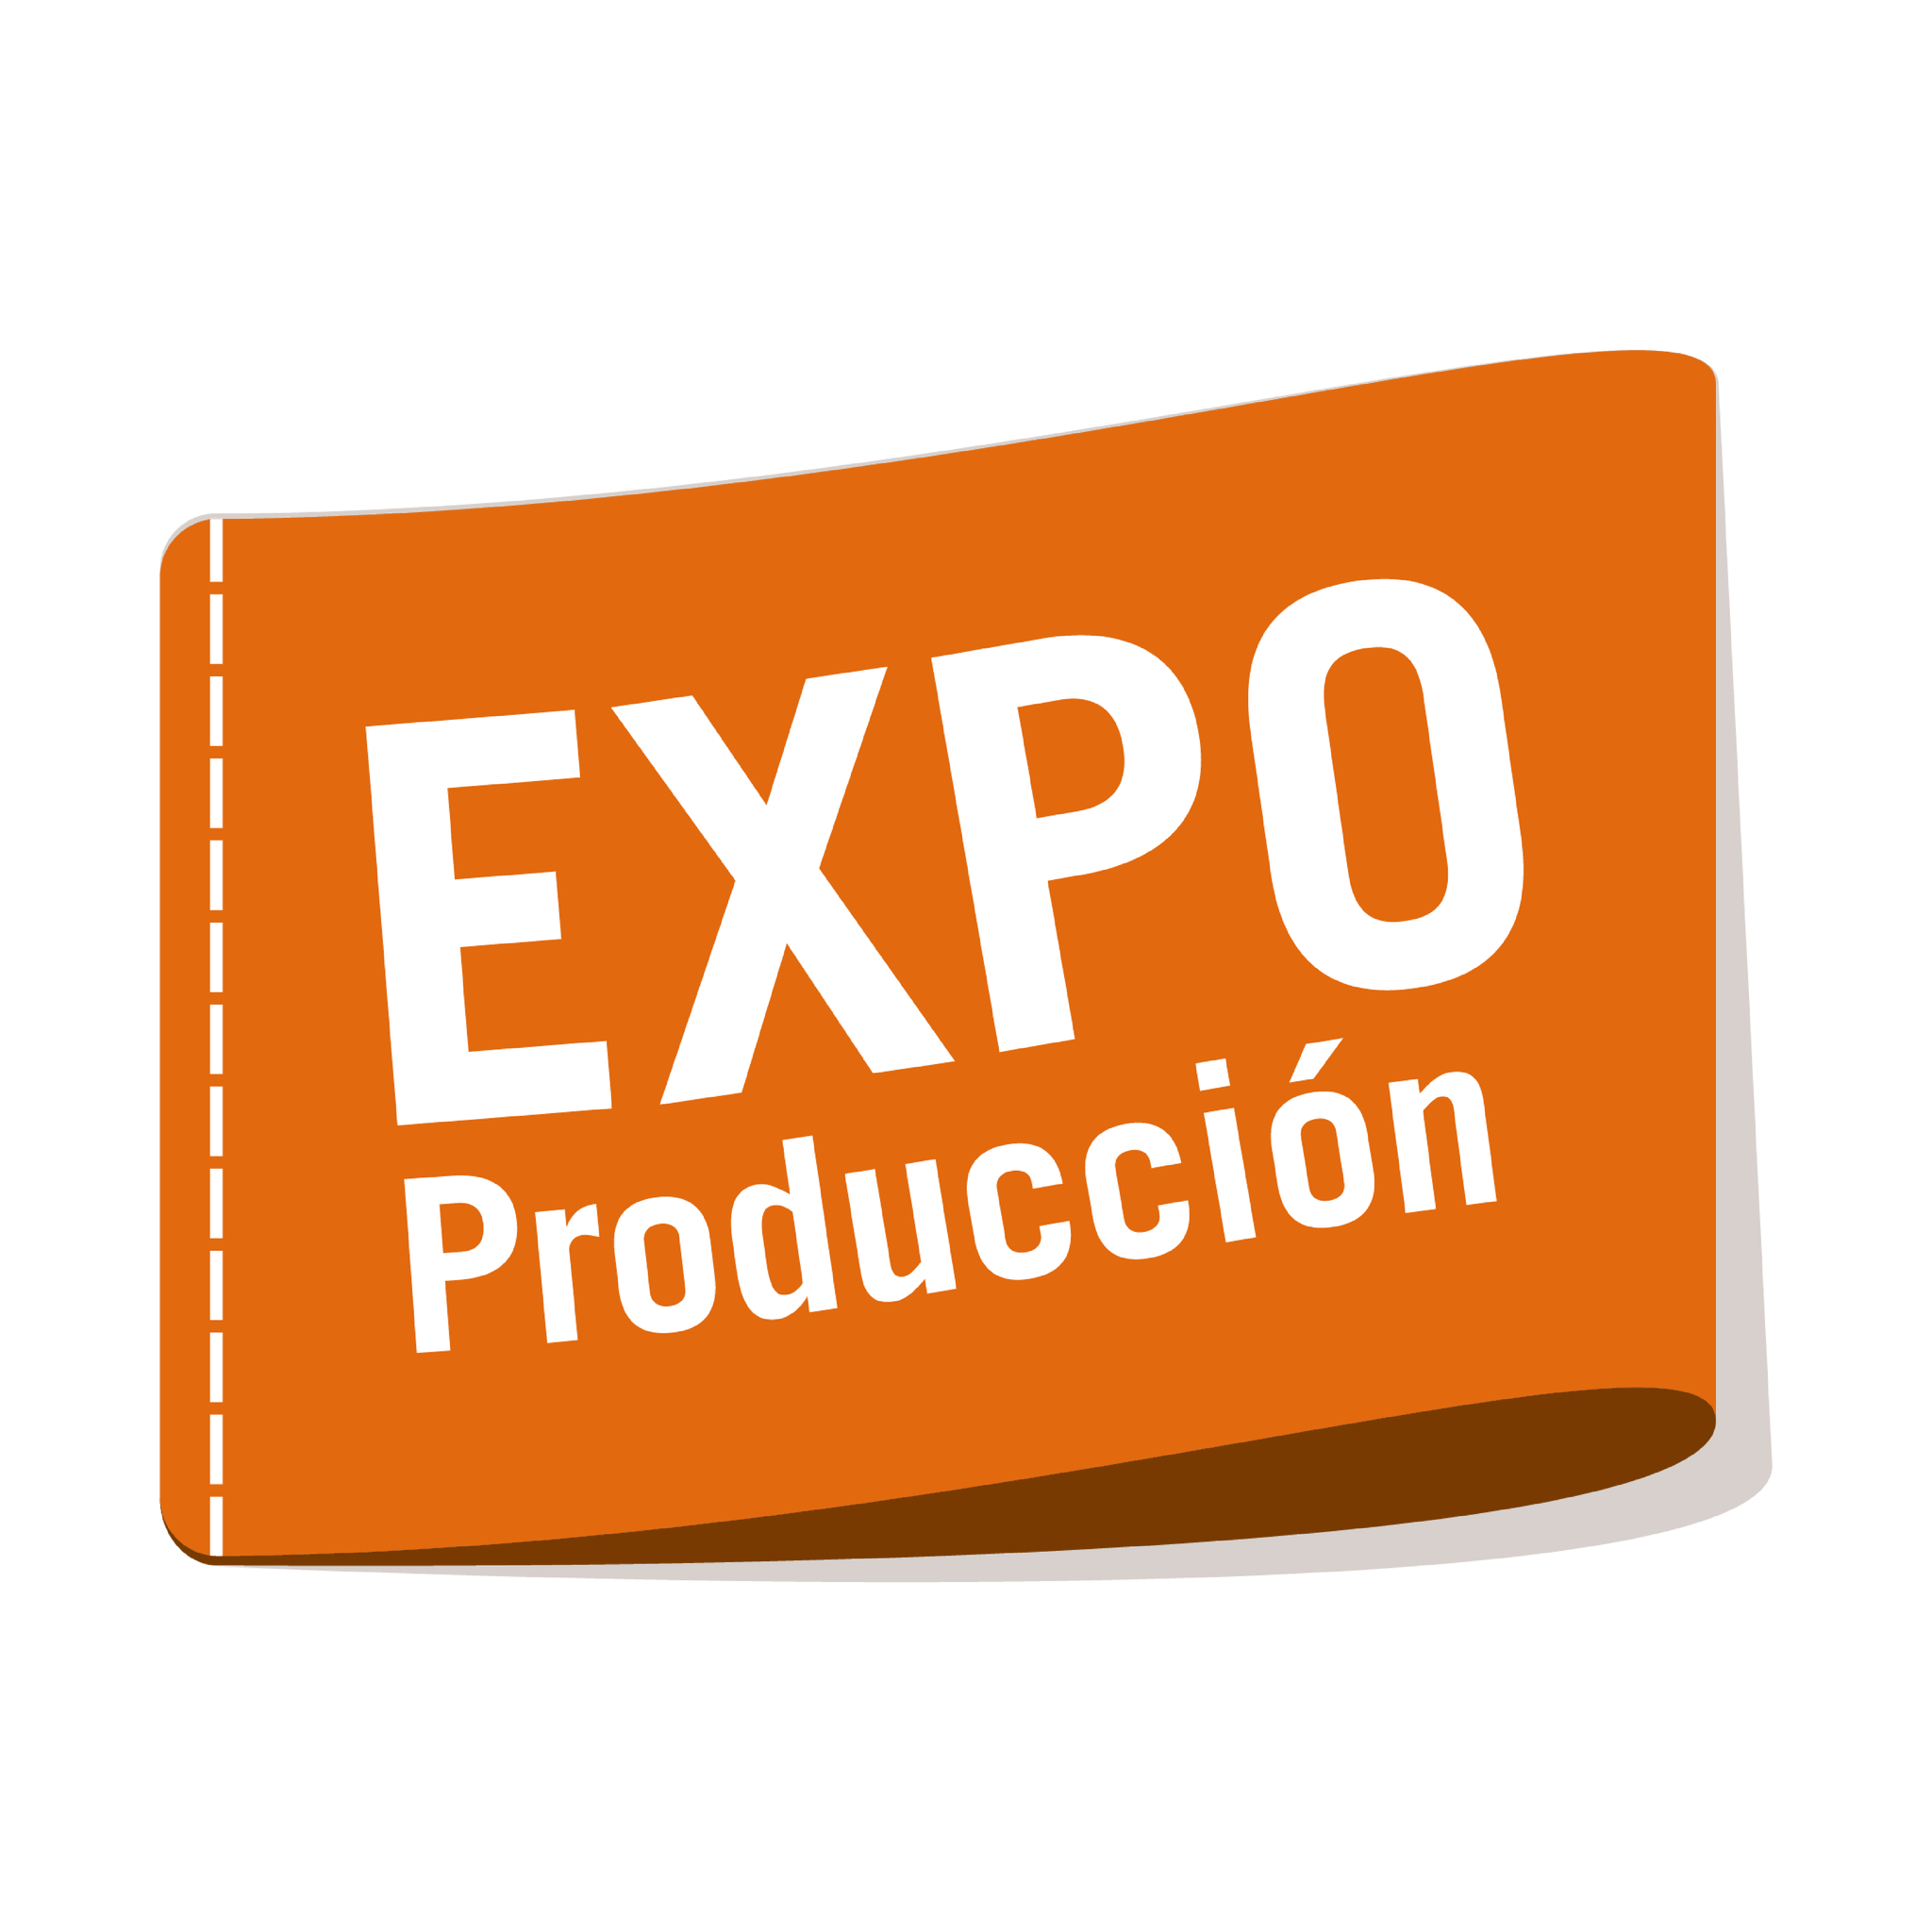 Expo Produccion